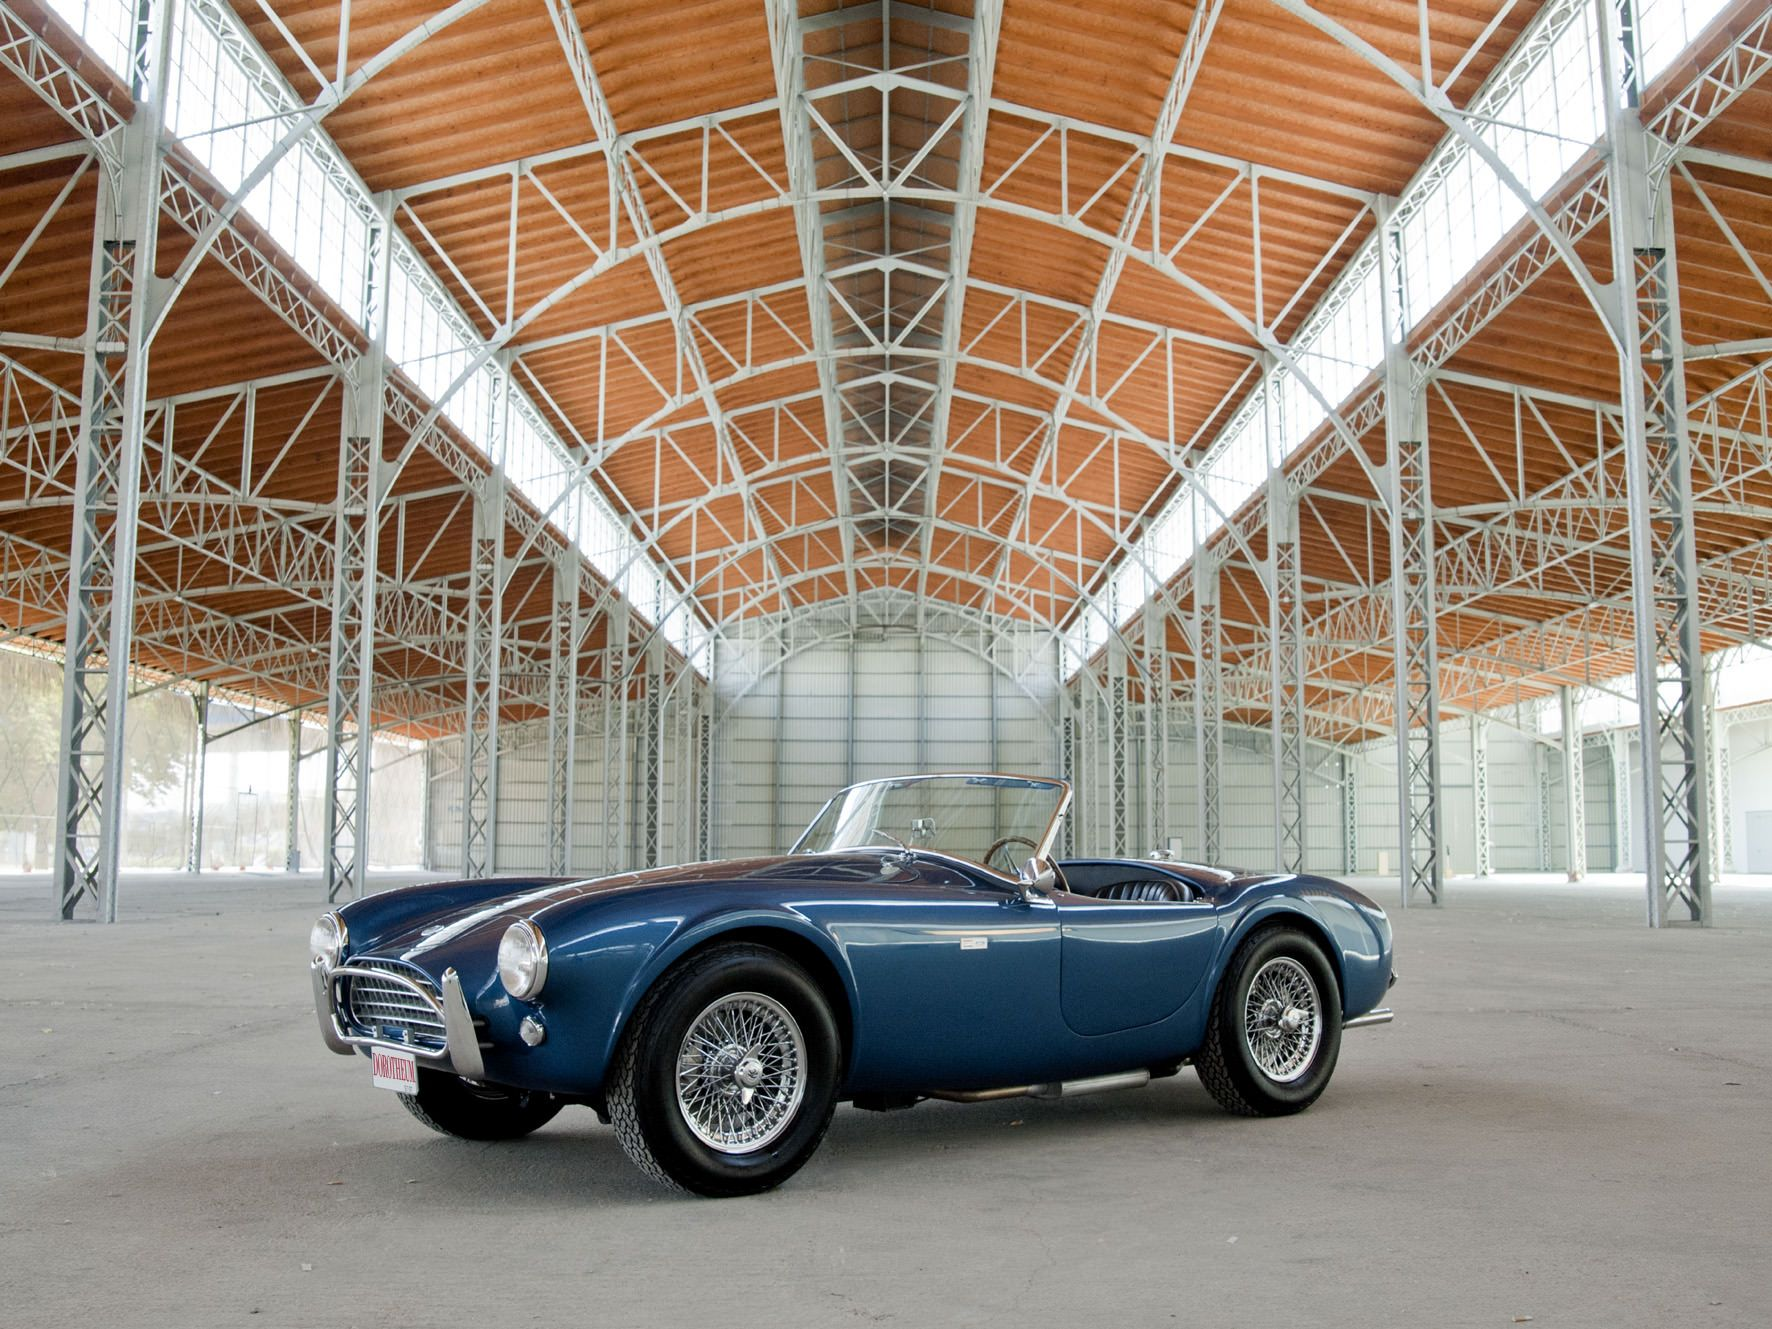 The story of the Shelby Cobra has become so deeply ingrained into the psyche of automotive devotees on both sides of the Atlantic that it's practically spliced into their DNA. Carroll Shelby started out as a racing driver and quickly moved up the ranks in the USA before finding his way across the pond to...